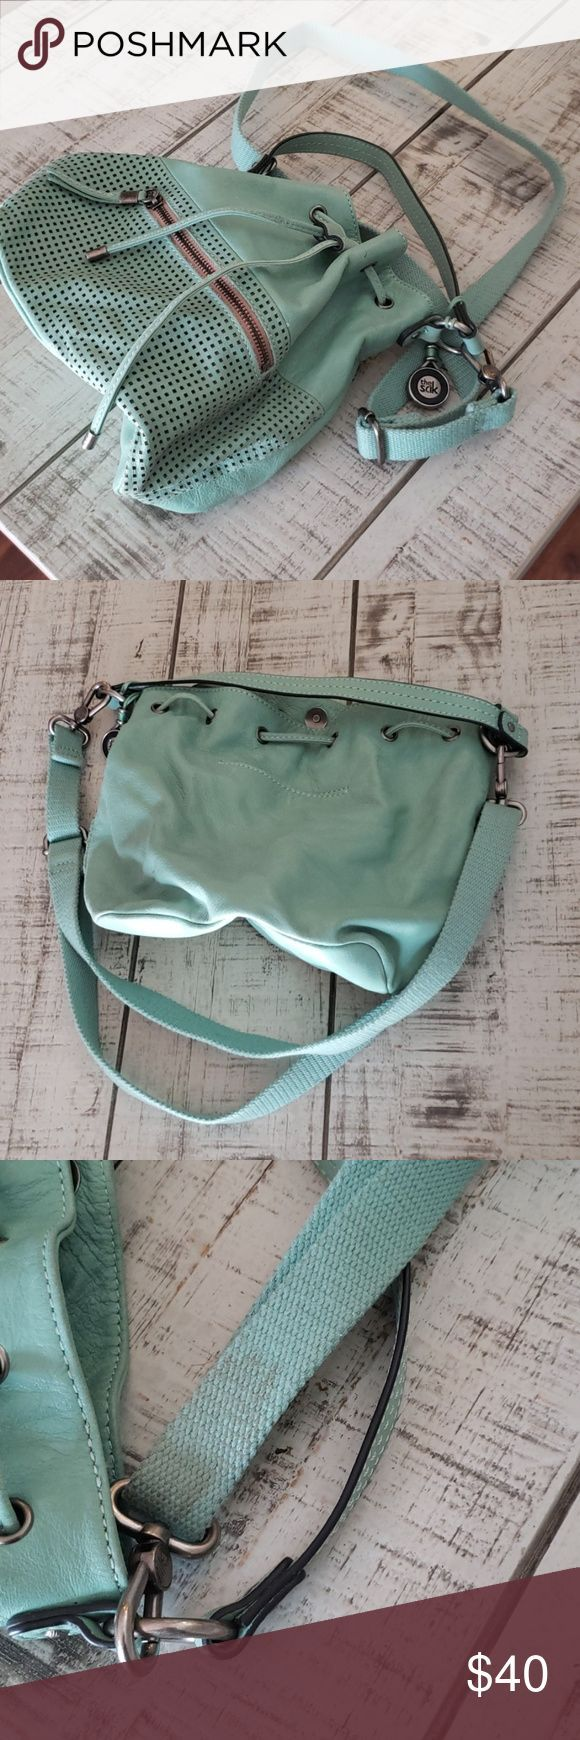 Boho Teal Turquoise Leather Purse by The Sak This is a used bohemian style leath…